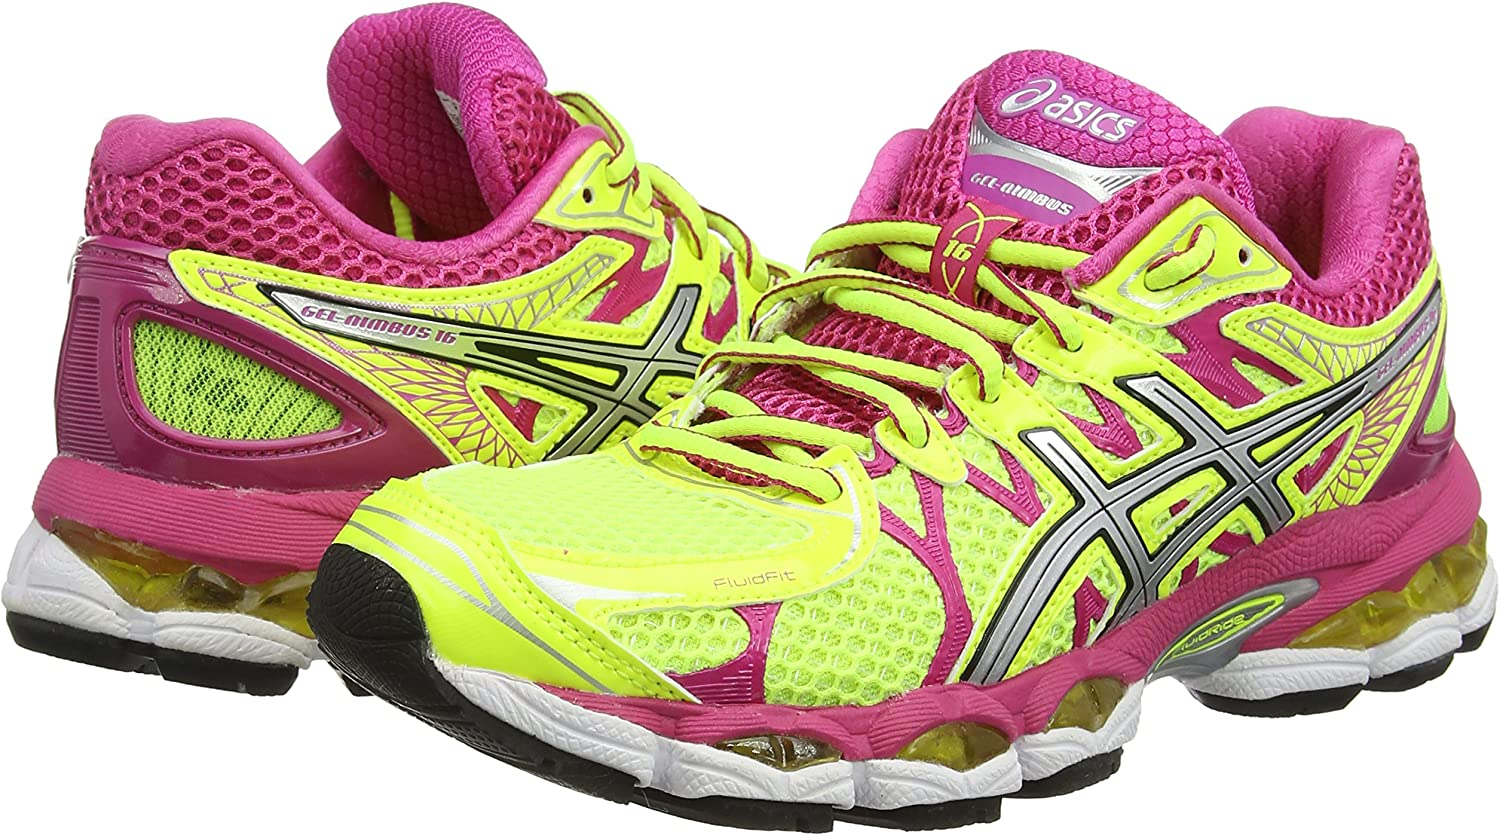 ASICS Gel-Nimbus 16 - Zapatillas de deporte para mujer, color amarillo (Flash Yellow / Silver / Hot Pink 793), talla 36 EU: Amazon.es: Zapatos y complementos